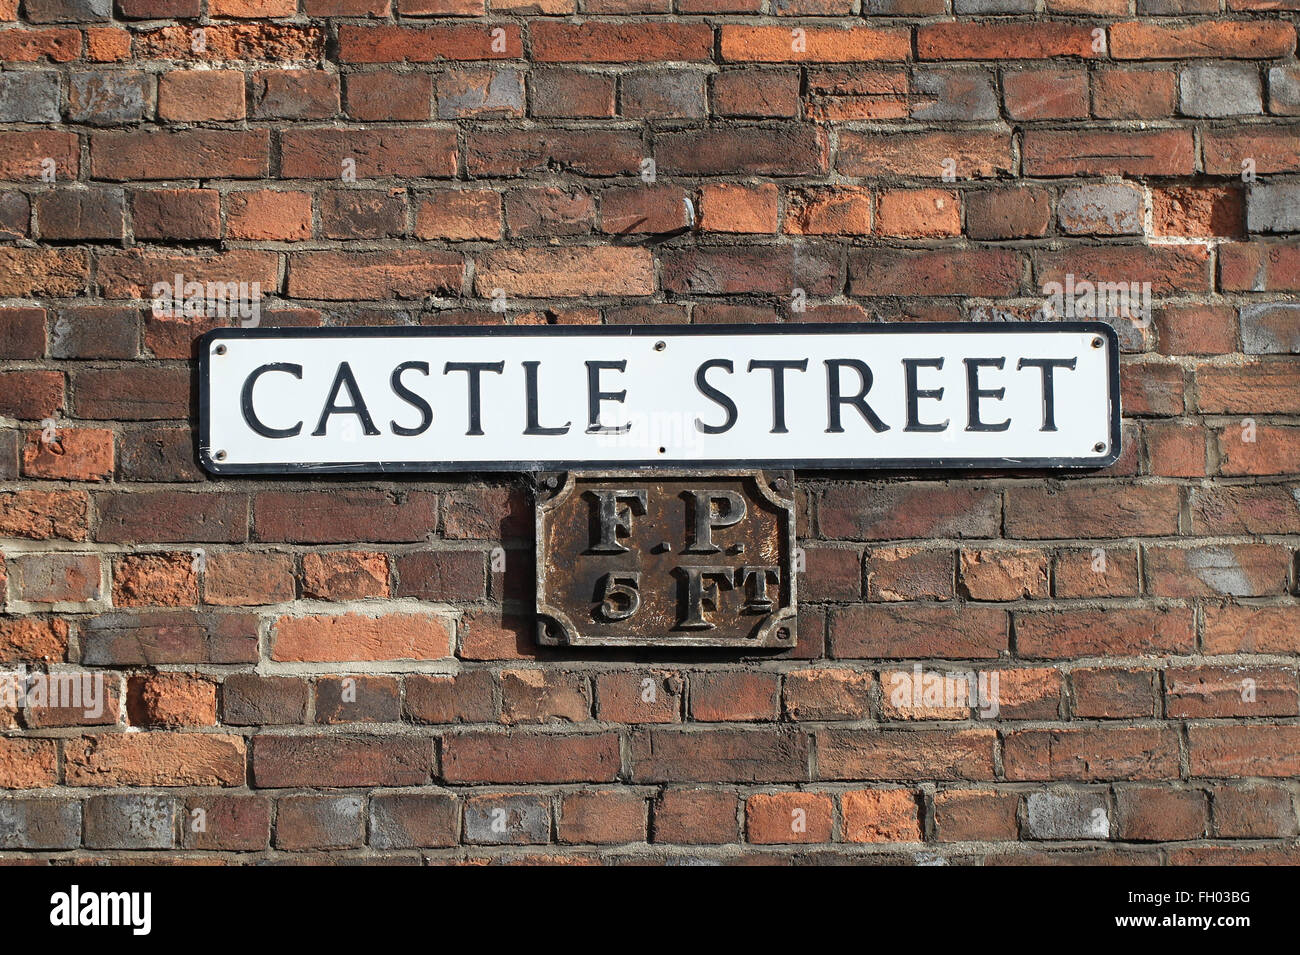 Antique fire point sign on Castle Street in Wallingford - Stock Image